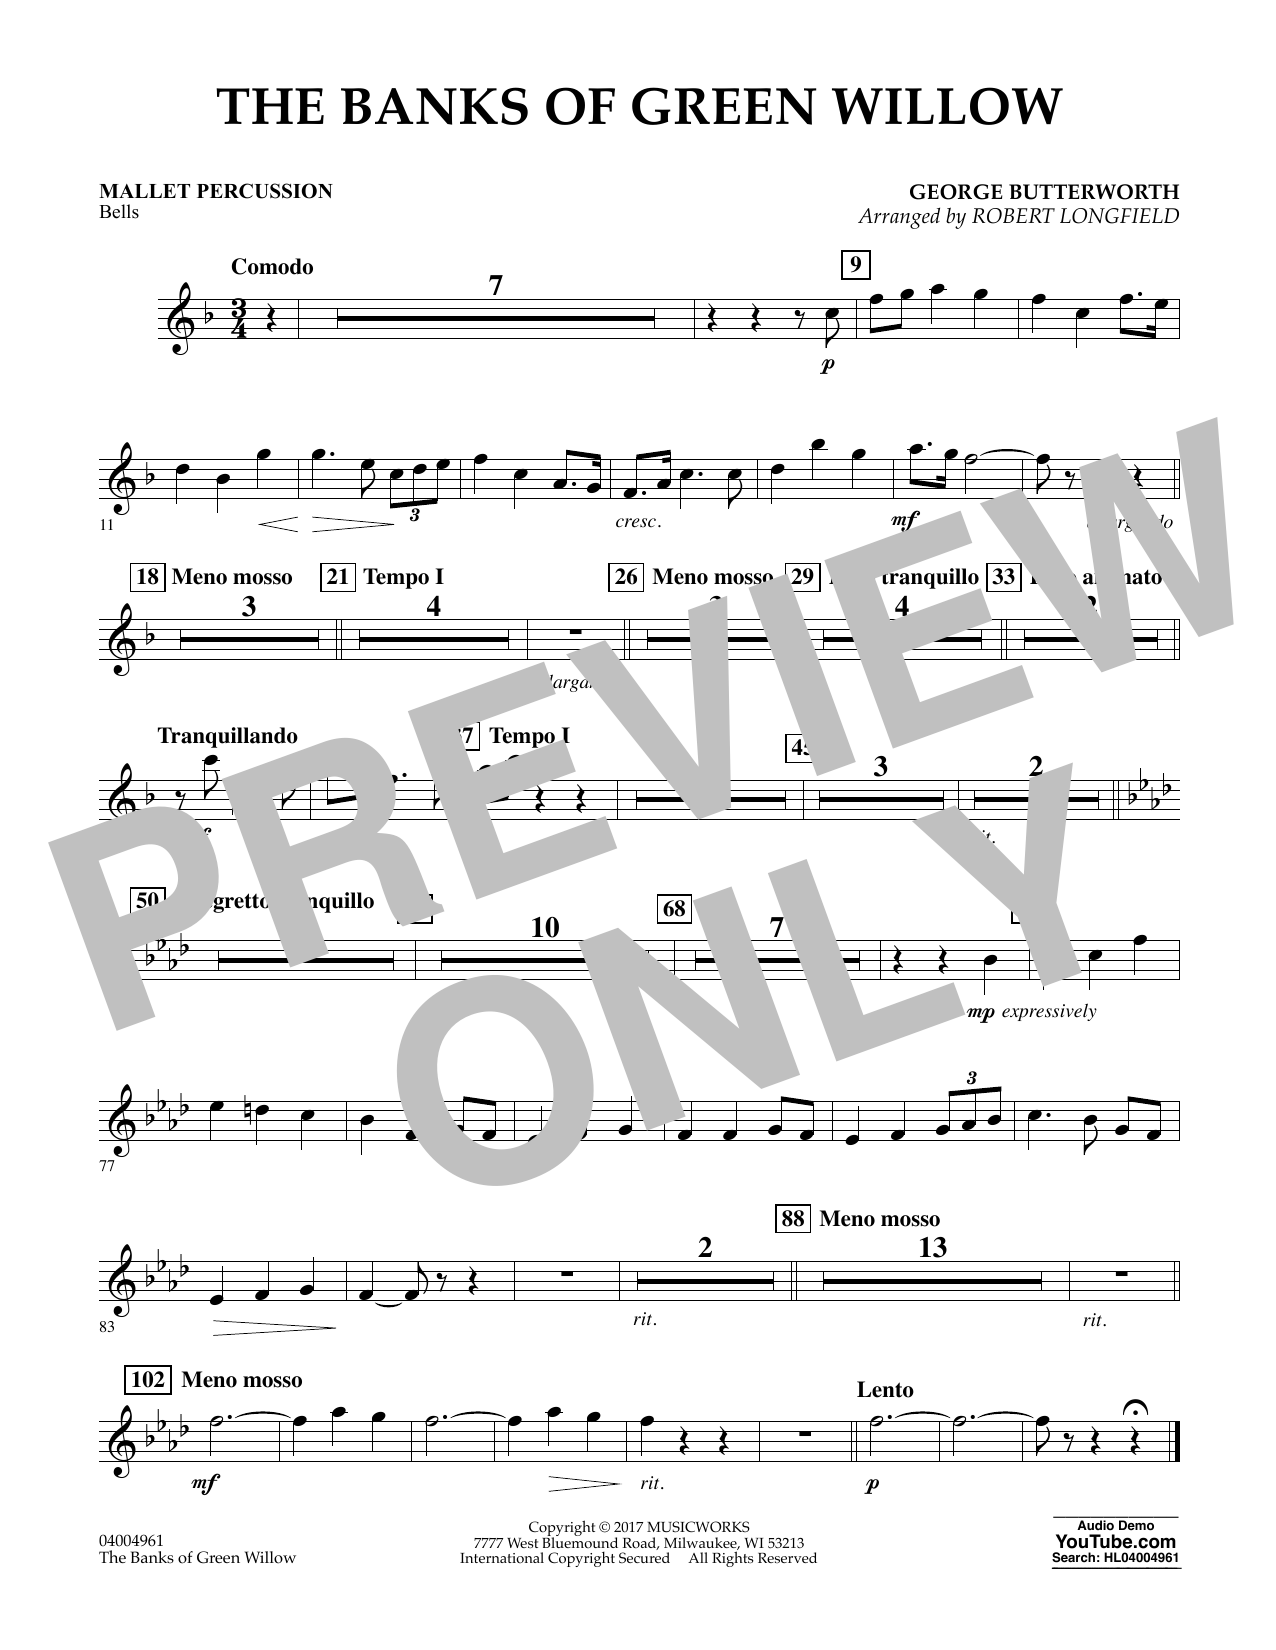 The Banks of Green Willow - Mallet Percussion Sheet Music